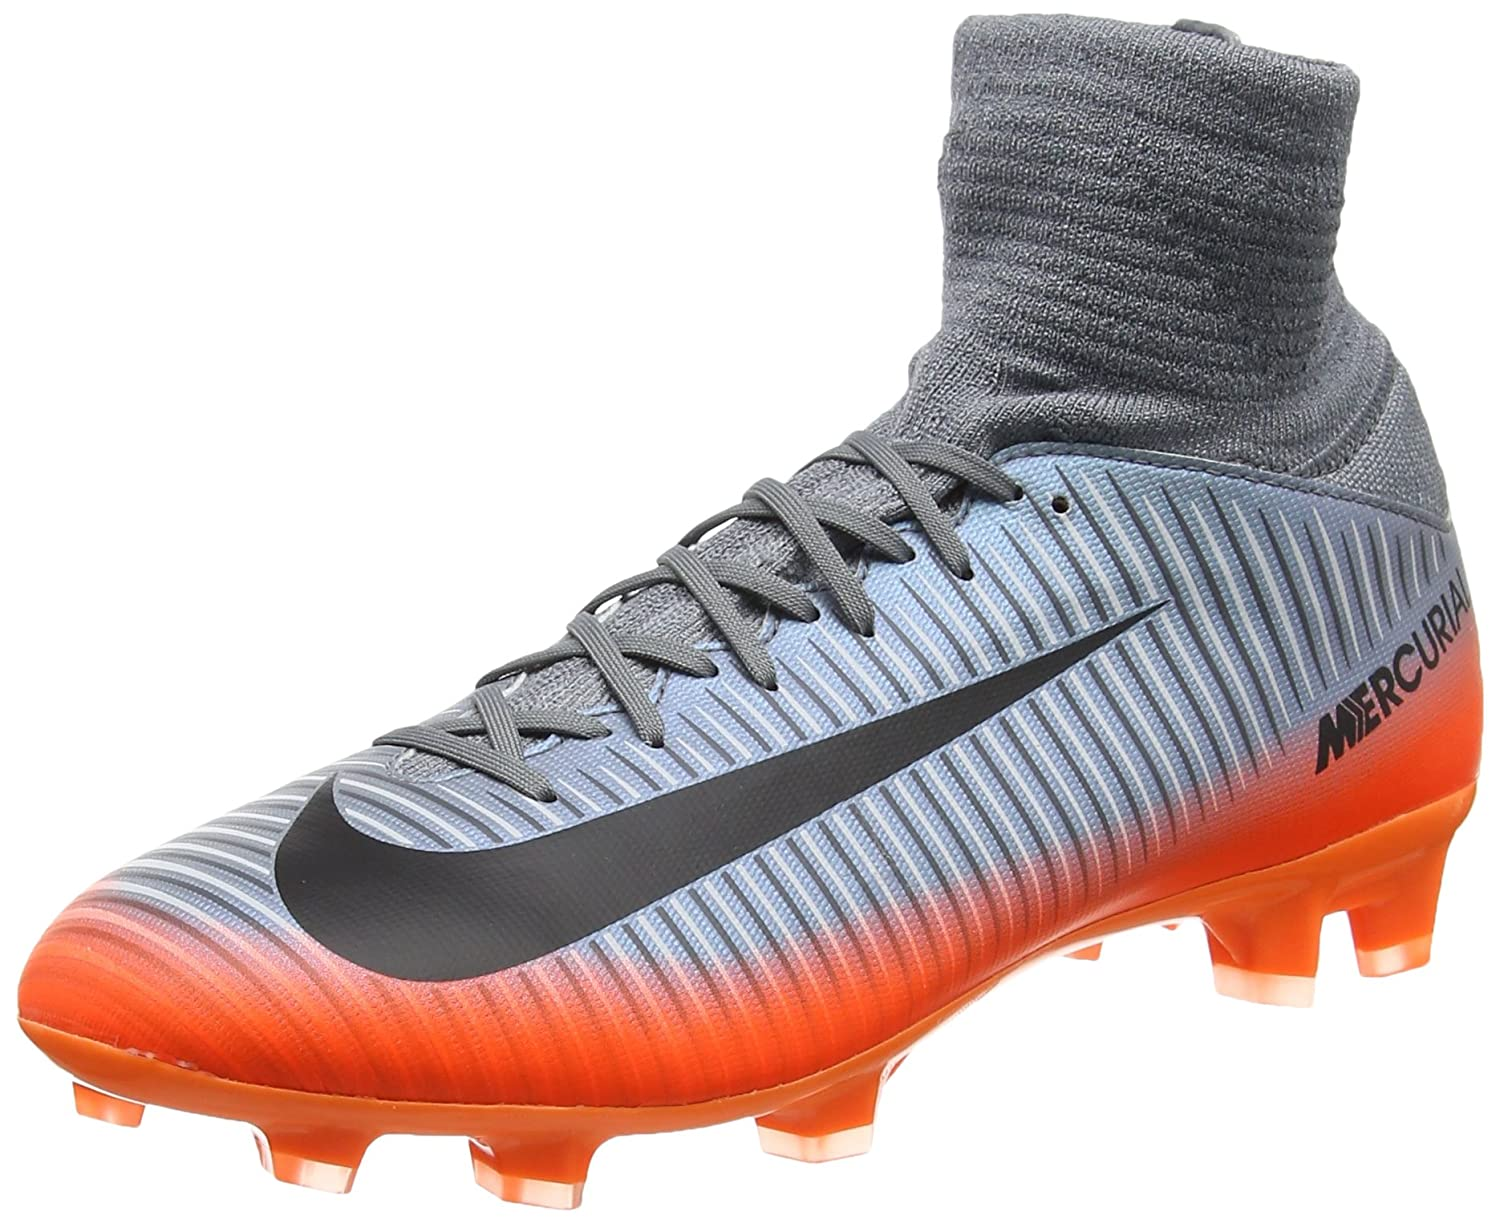 best service 22b07 9e1b9 Nike Junior Mercurial Superfly V Cr7 Football Boots 852483 Soccer Cleats   Amazon.ca  Shoes   Handbags